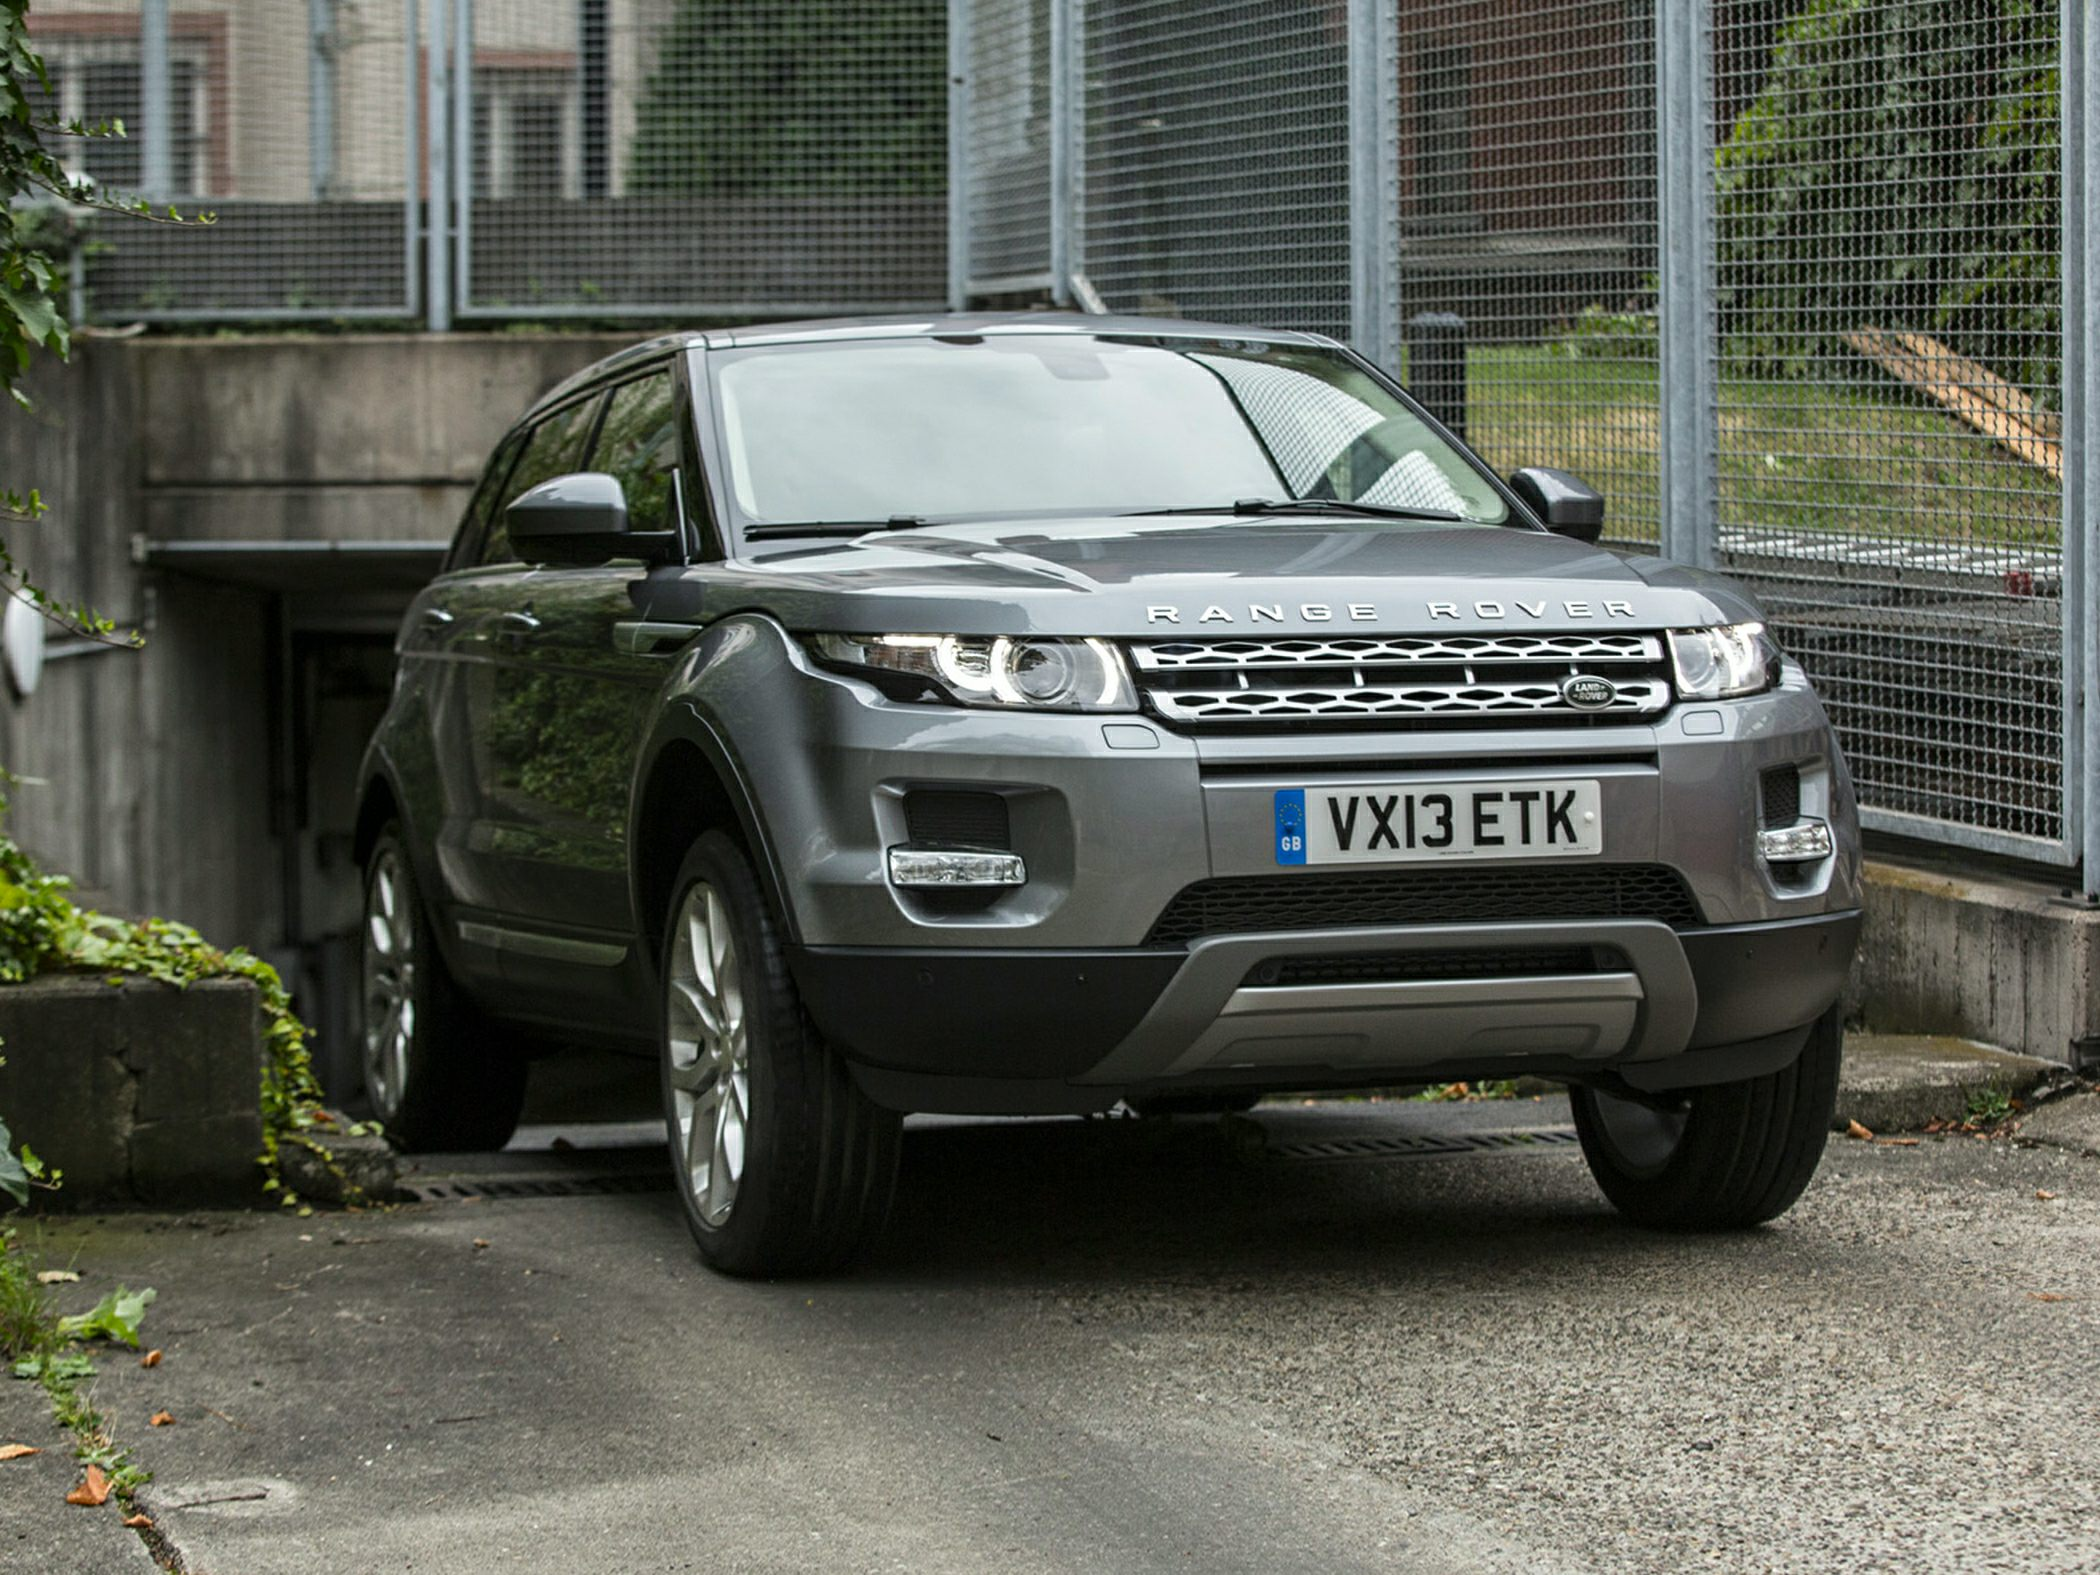 2014 Land Rover Range Rover Evoque Information and photos